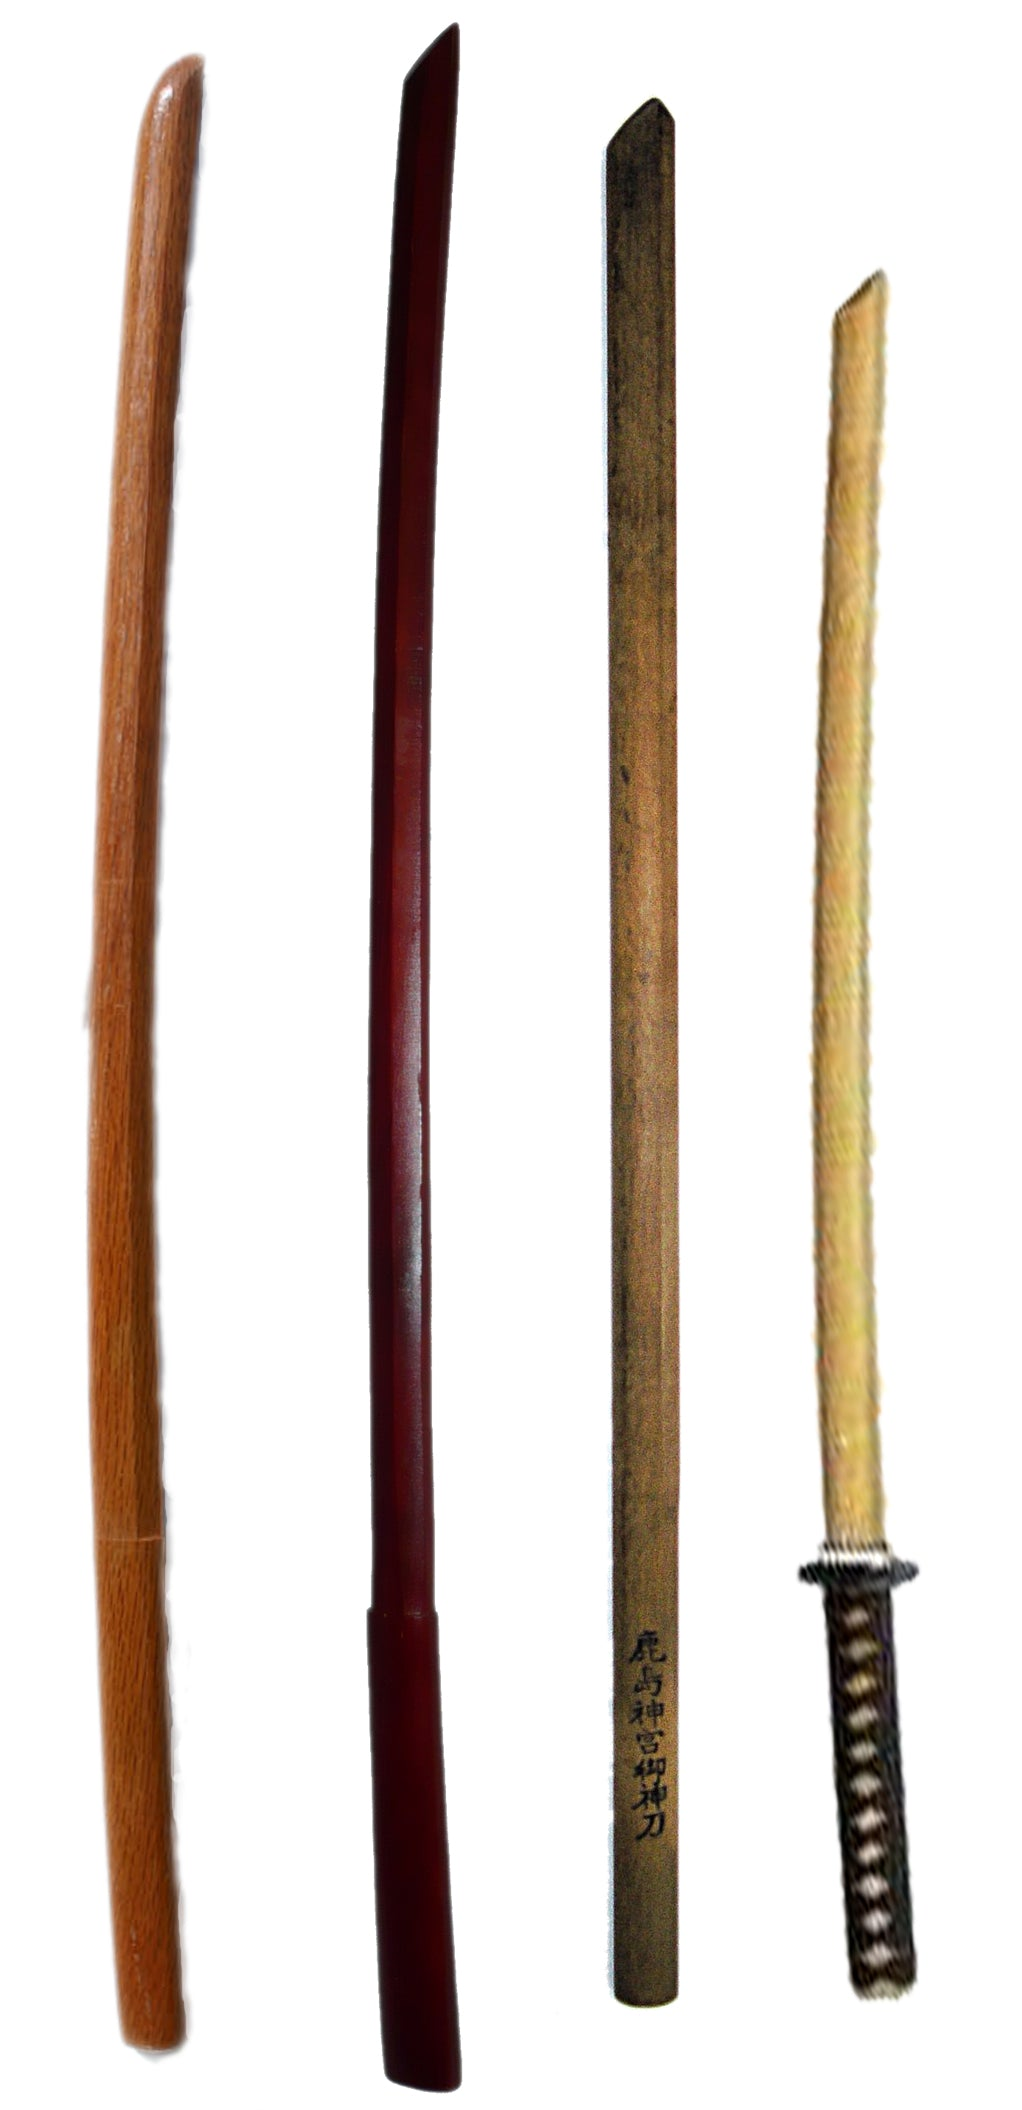 Bokken vs Shinken: What's the Difference?